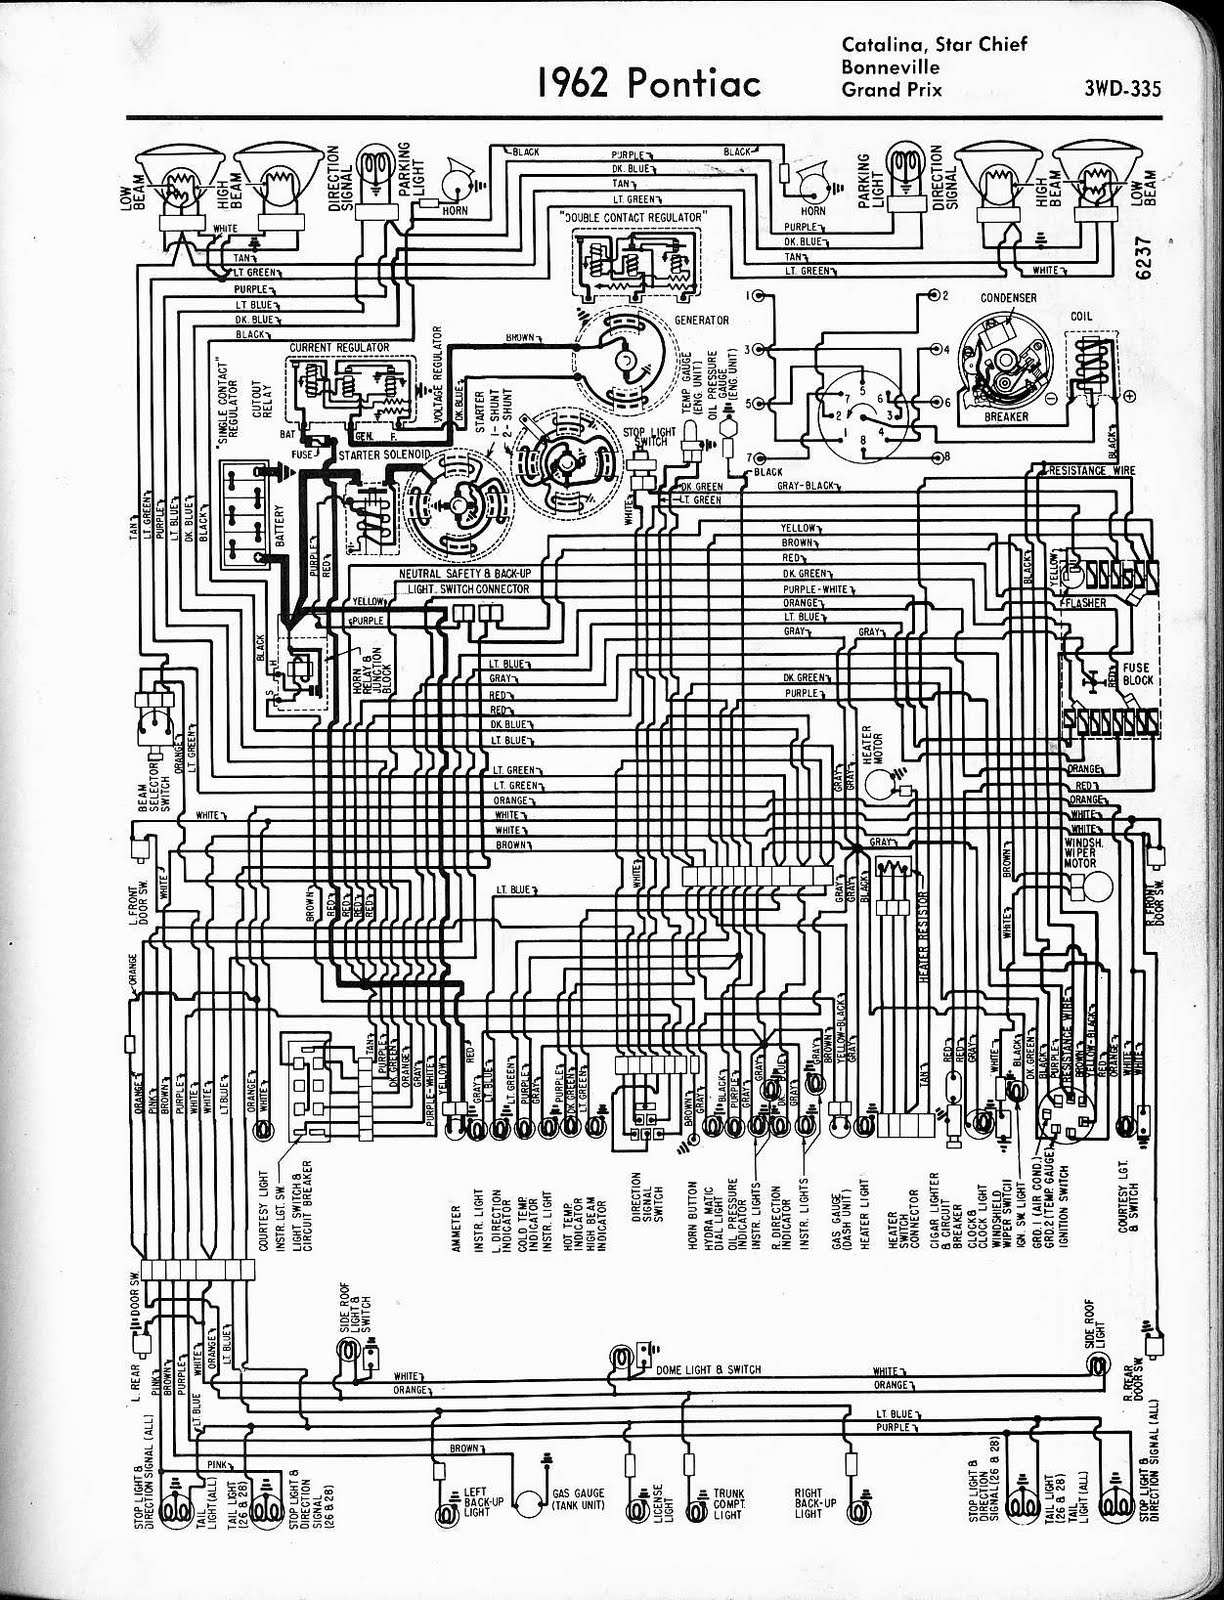 1970 grand prix wiring diagram 1970 pontiac grand prix wiring diagram